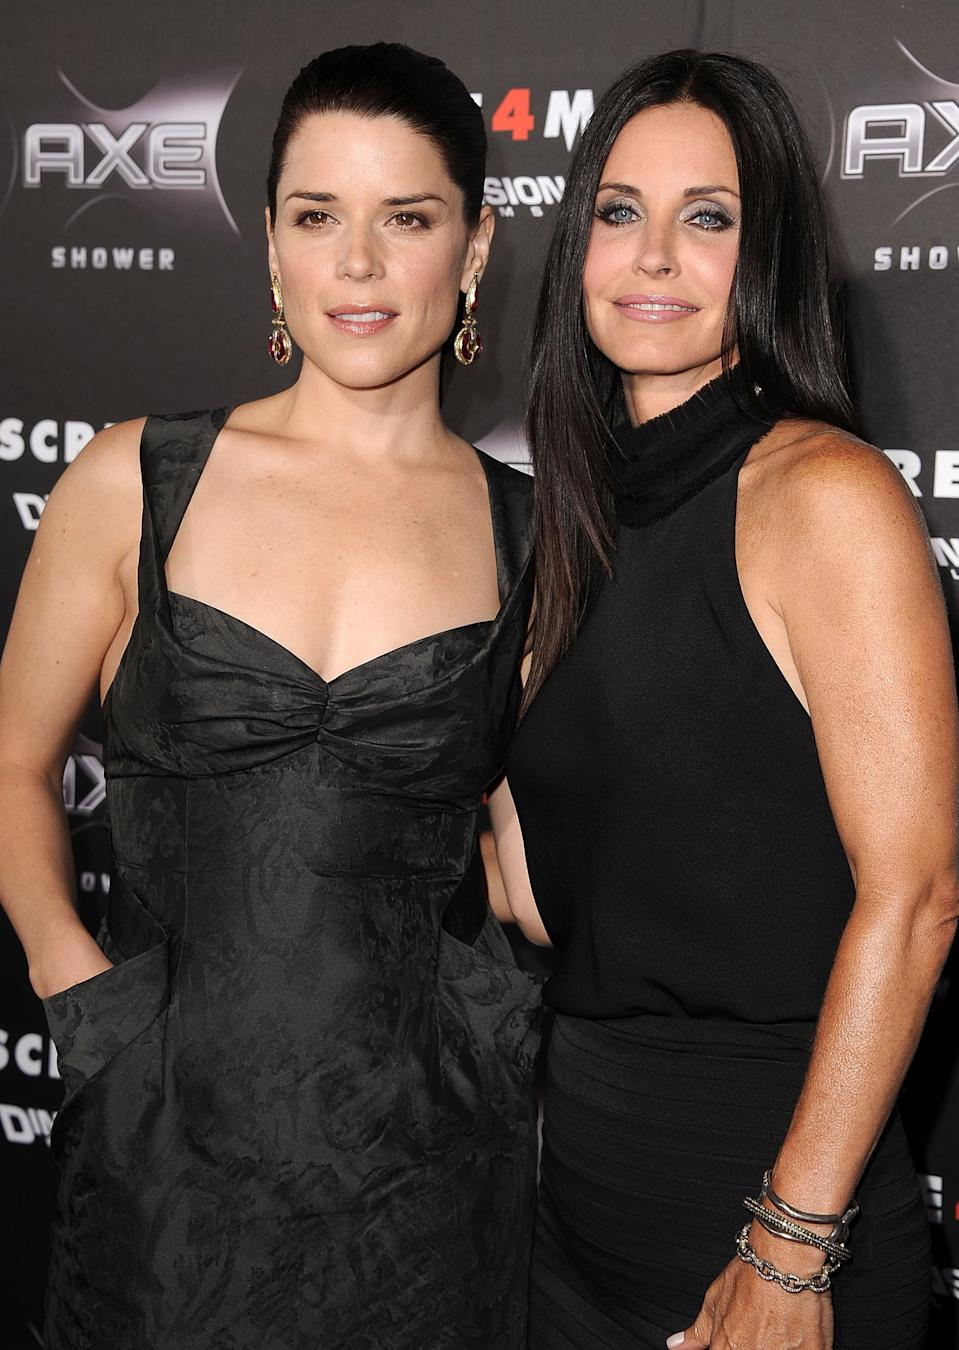 """Neve Campbell and Courteney Cox attends the """"Scre4m"""" Los Angeles Premiere at Grauman's Chinese Theatre on April 11, 2011 in Hollywood, California. (Photo by Steve Granitz/WireImage)"""